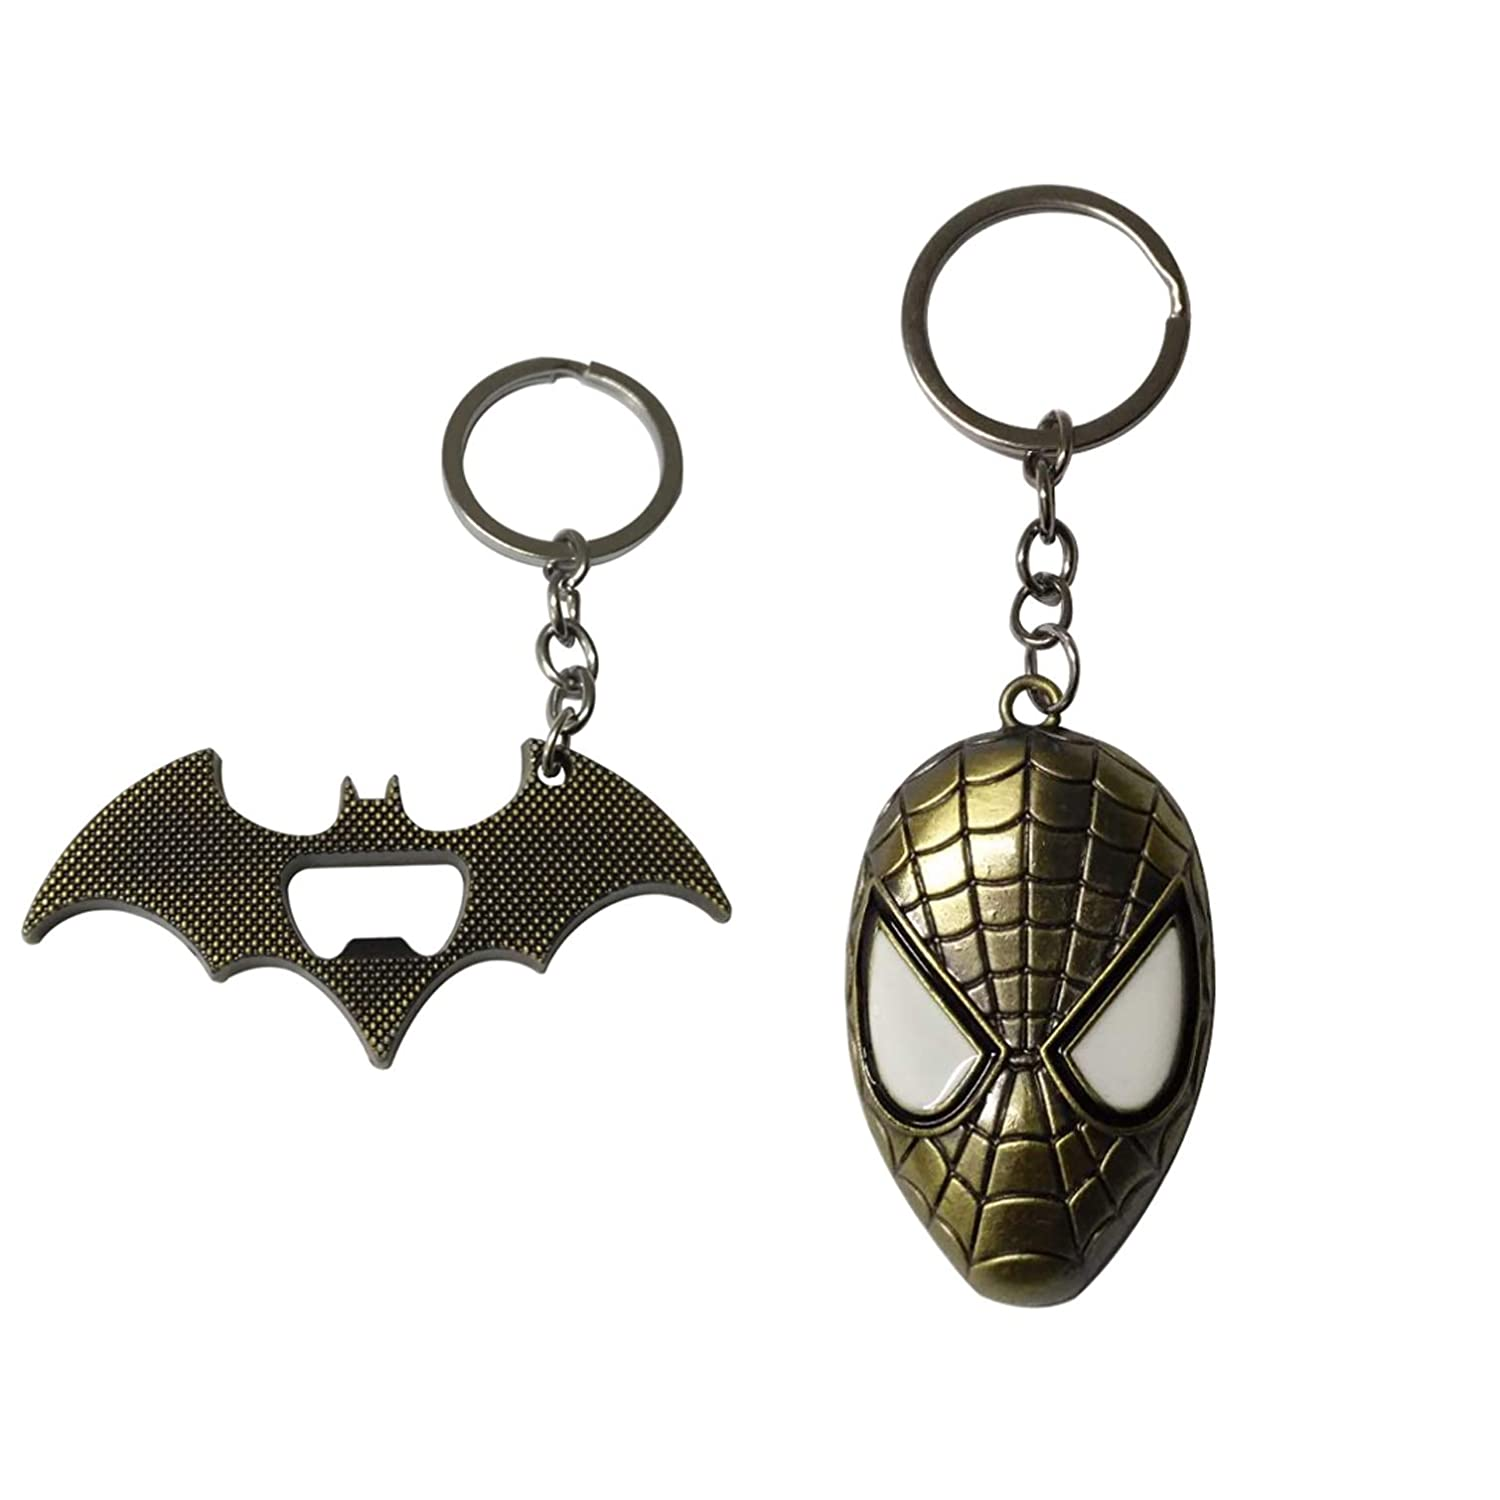 Spiderman Batman llavero abridor - 2 piezas: Amazon.es ...